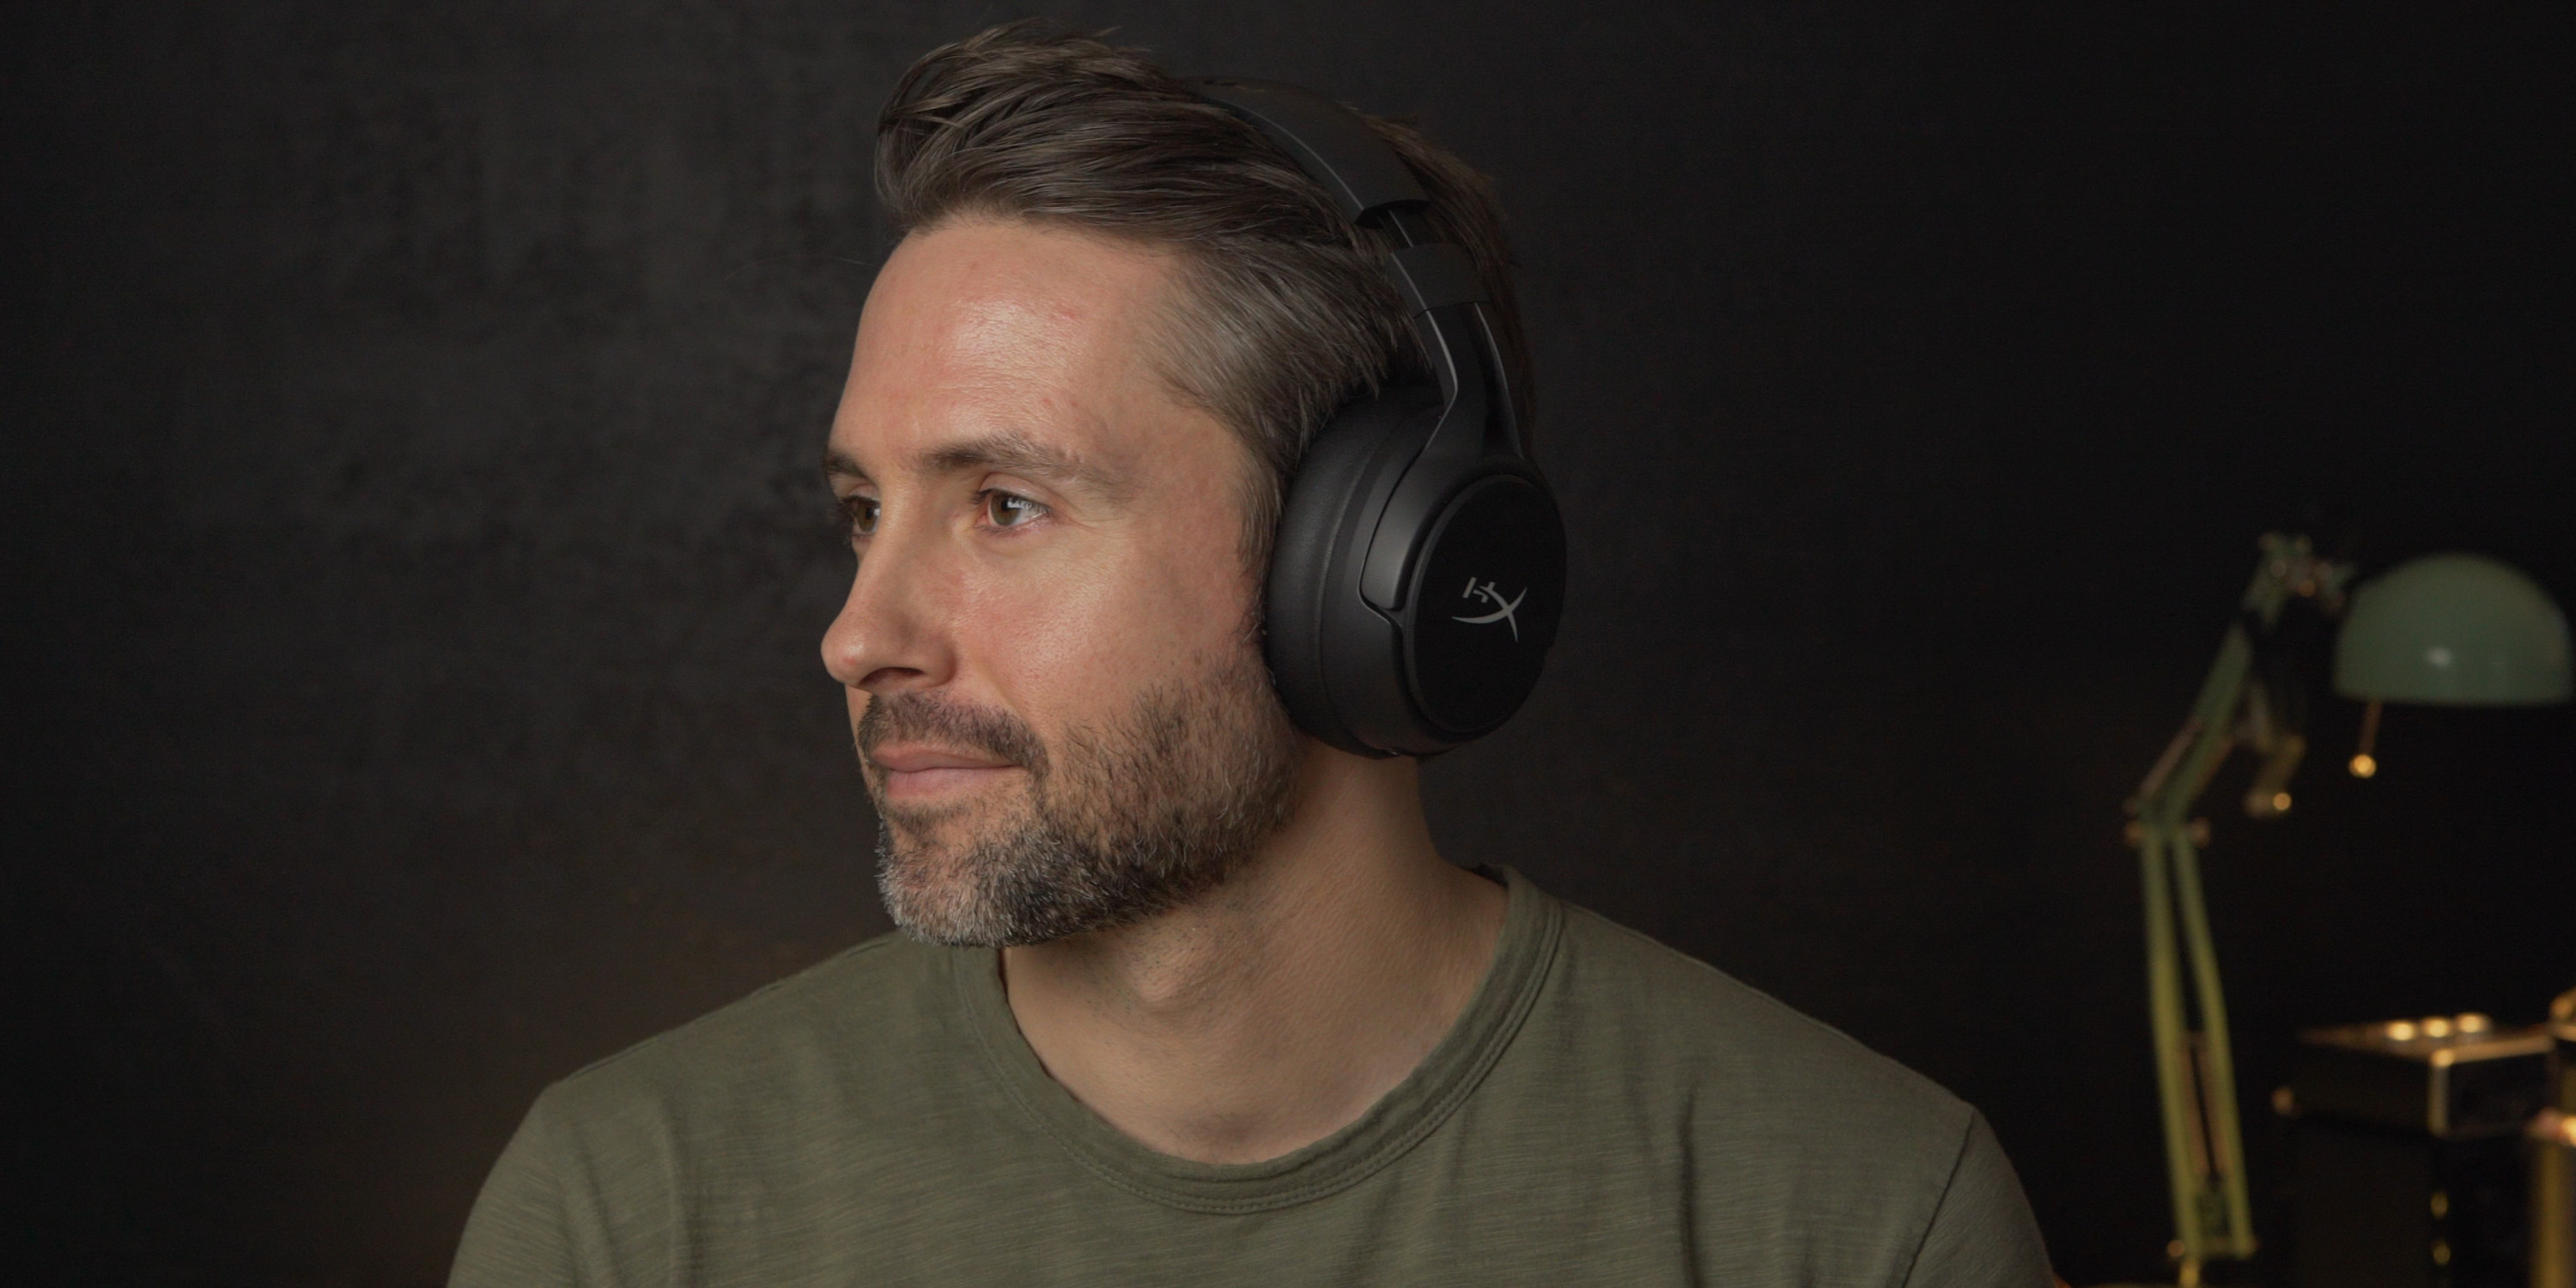 Wearing the HyperX Cloud Flight S headset